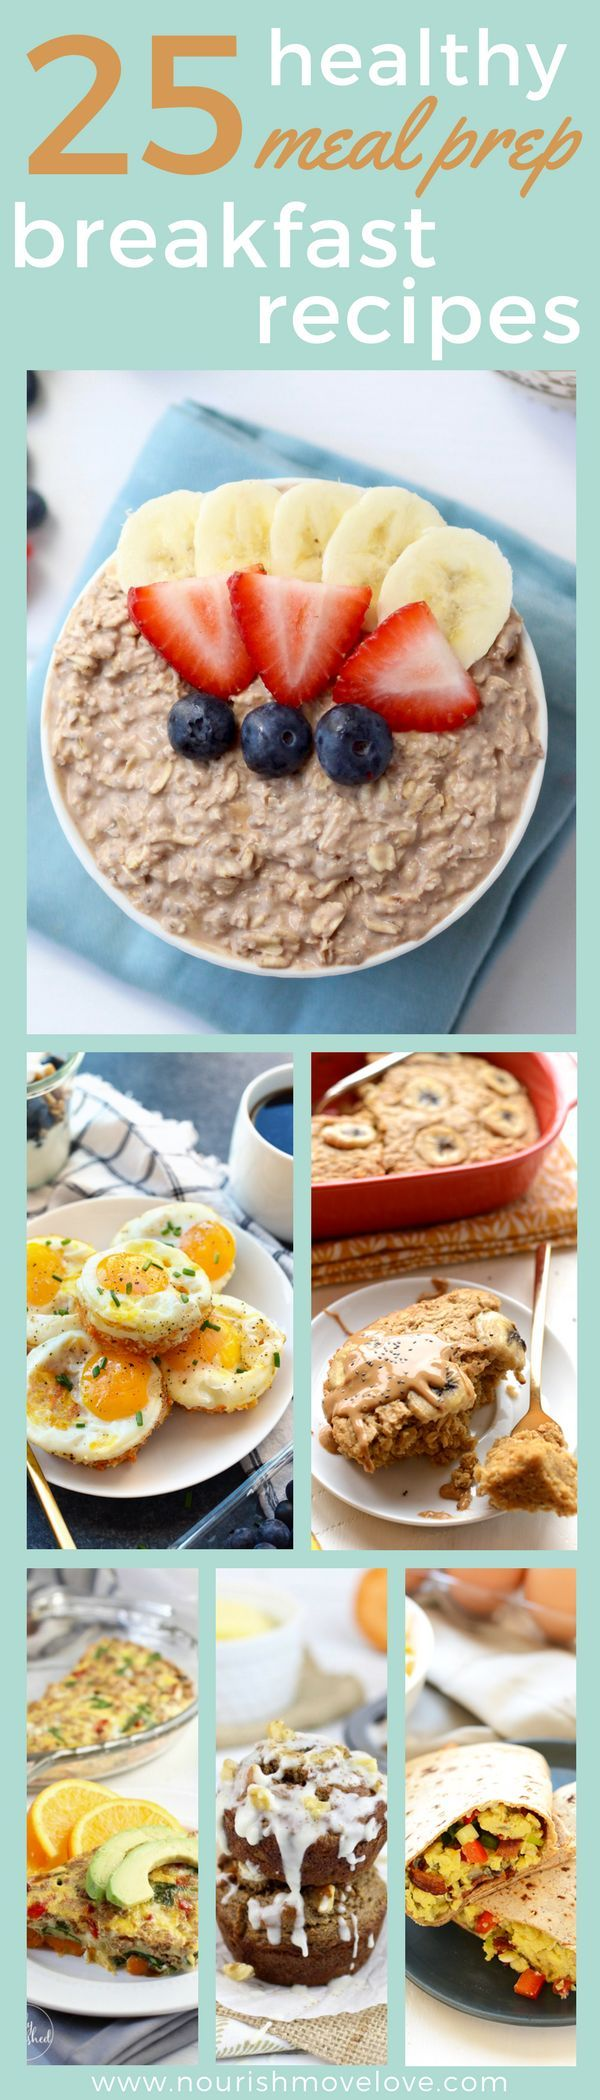 25 healthy meal prep breakfast recipes. Clean eating, simple recipes, easy ingredients to get your morning off right. Grab and go options that you can prep on the weekend   http://www.nourishmovelove.com